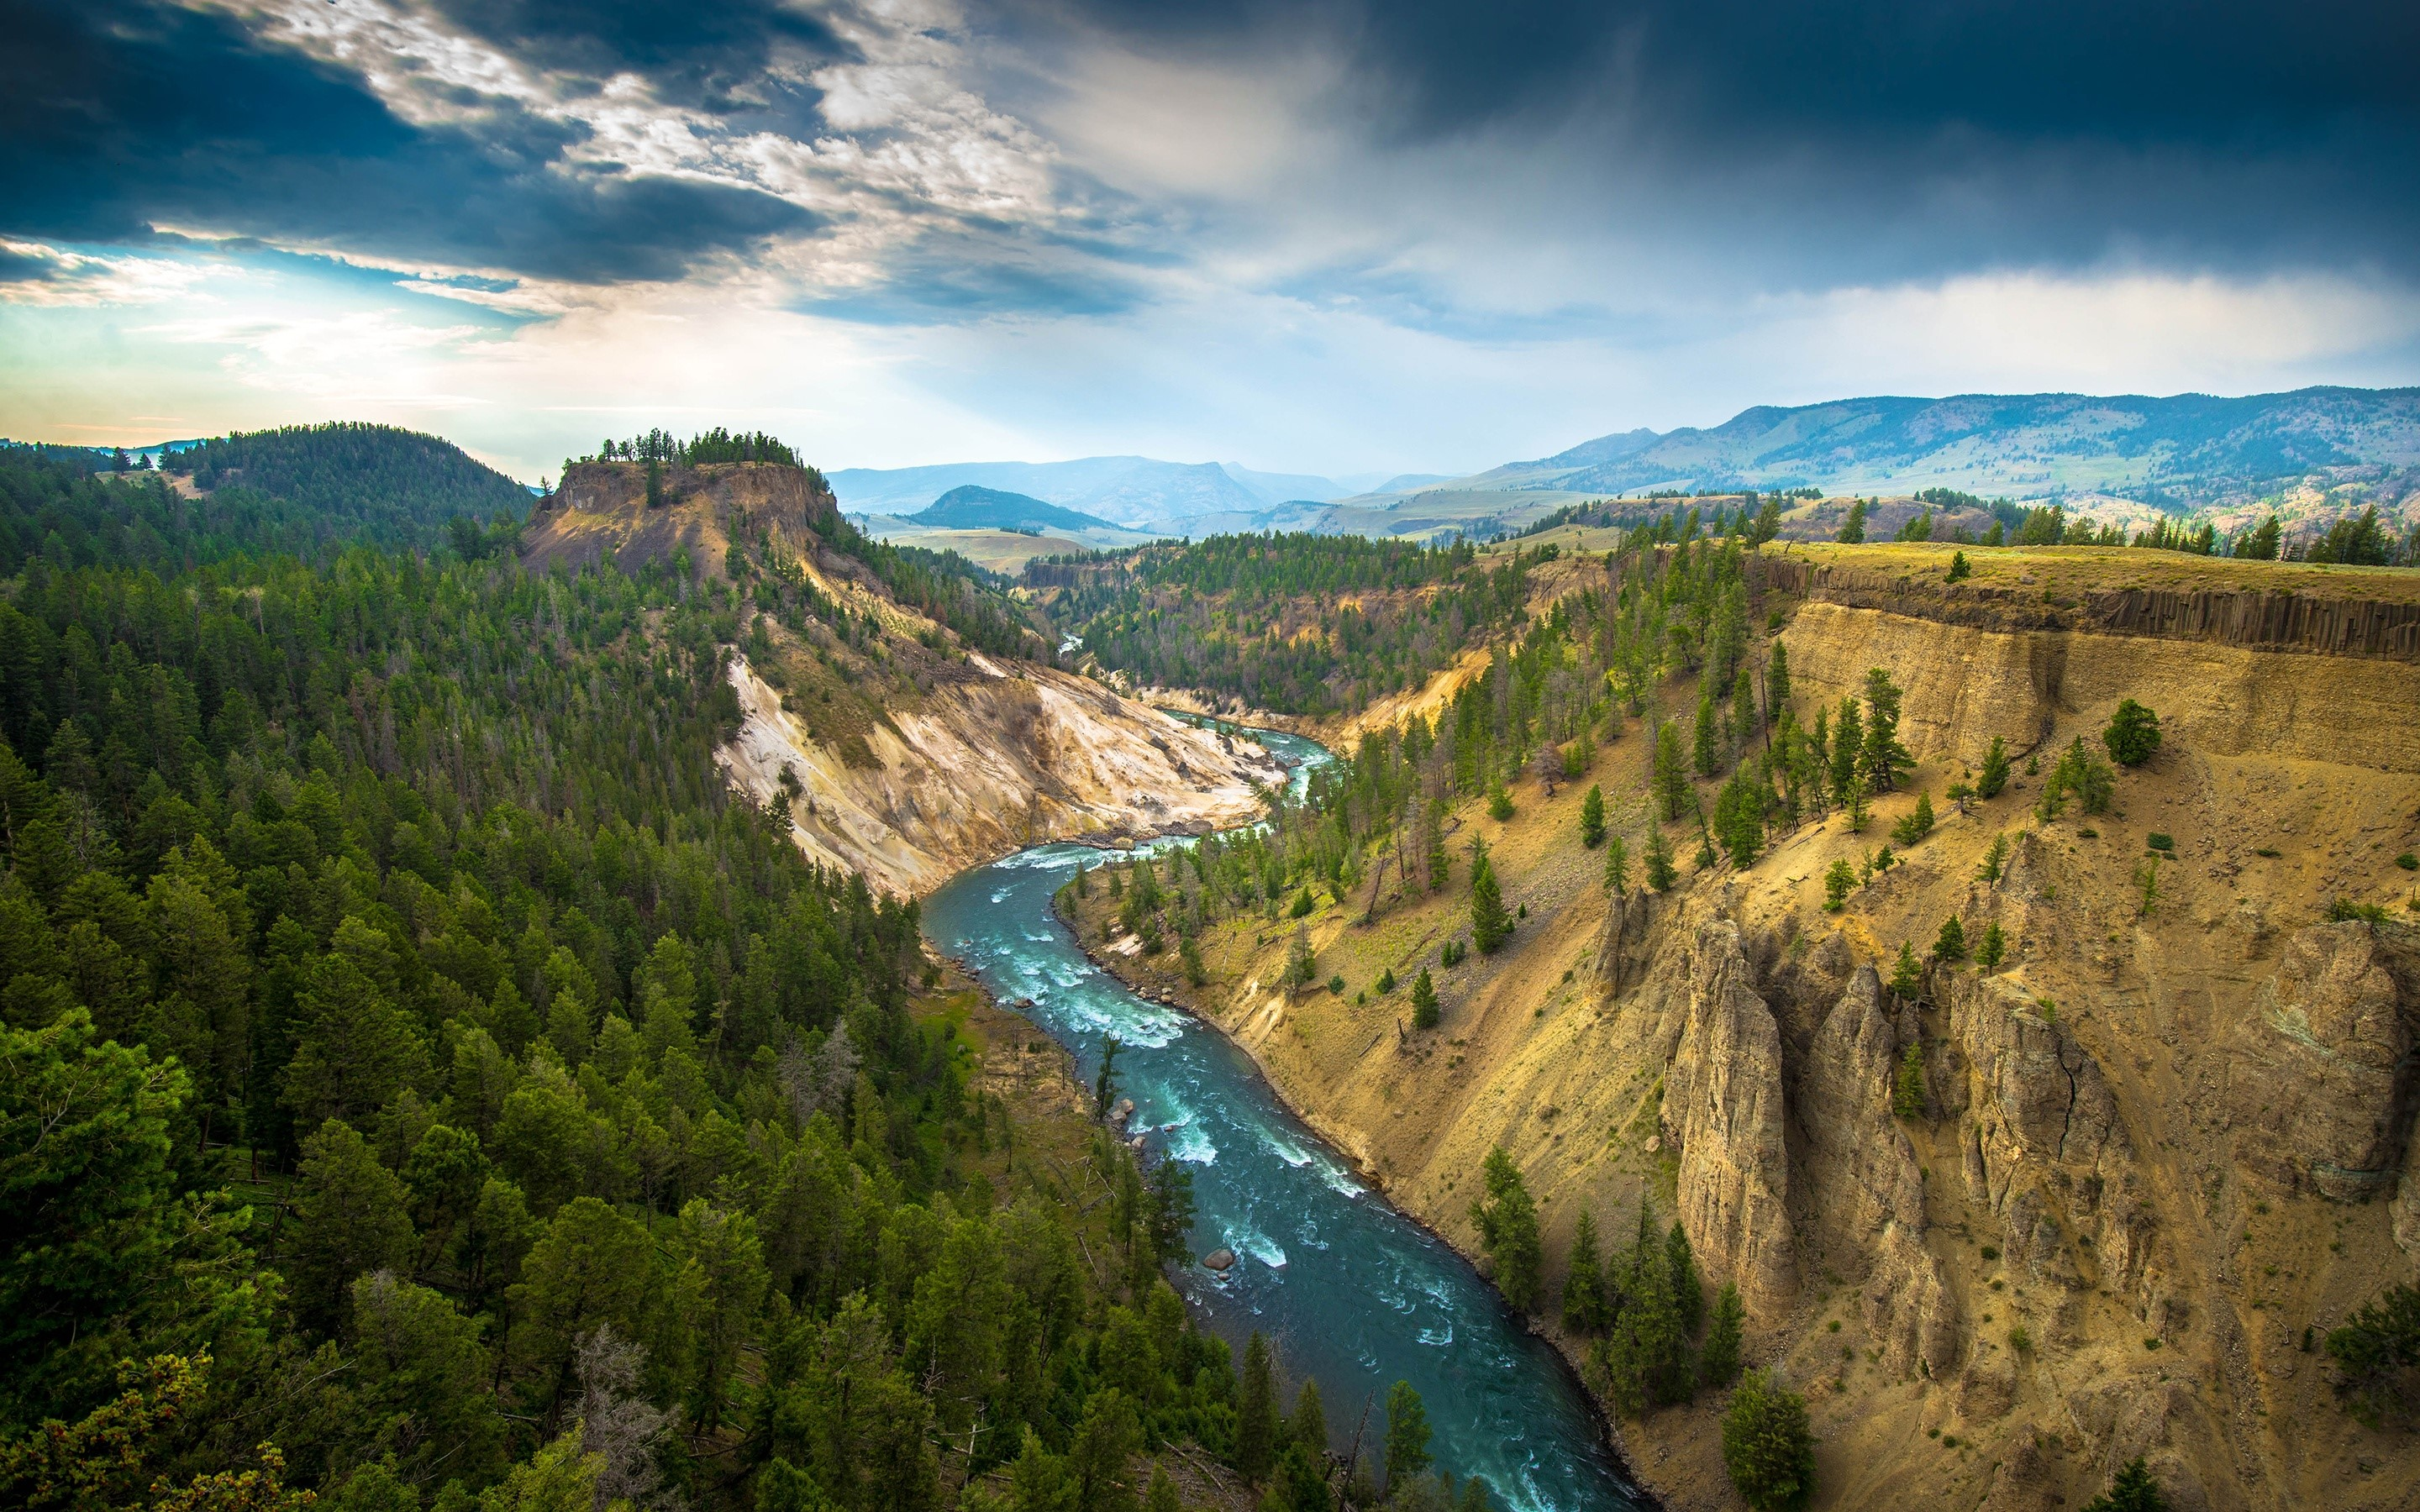 Wallpaper The great canyon on the Yellowstone River